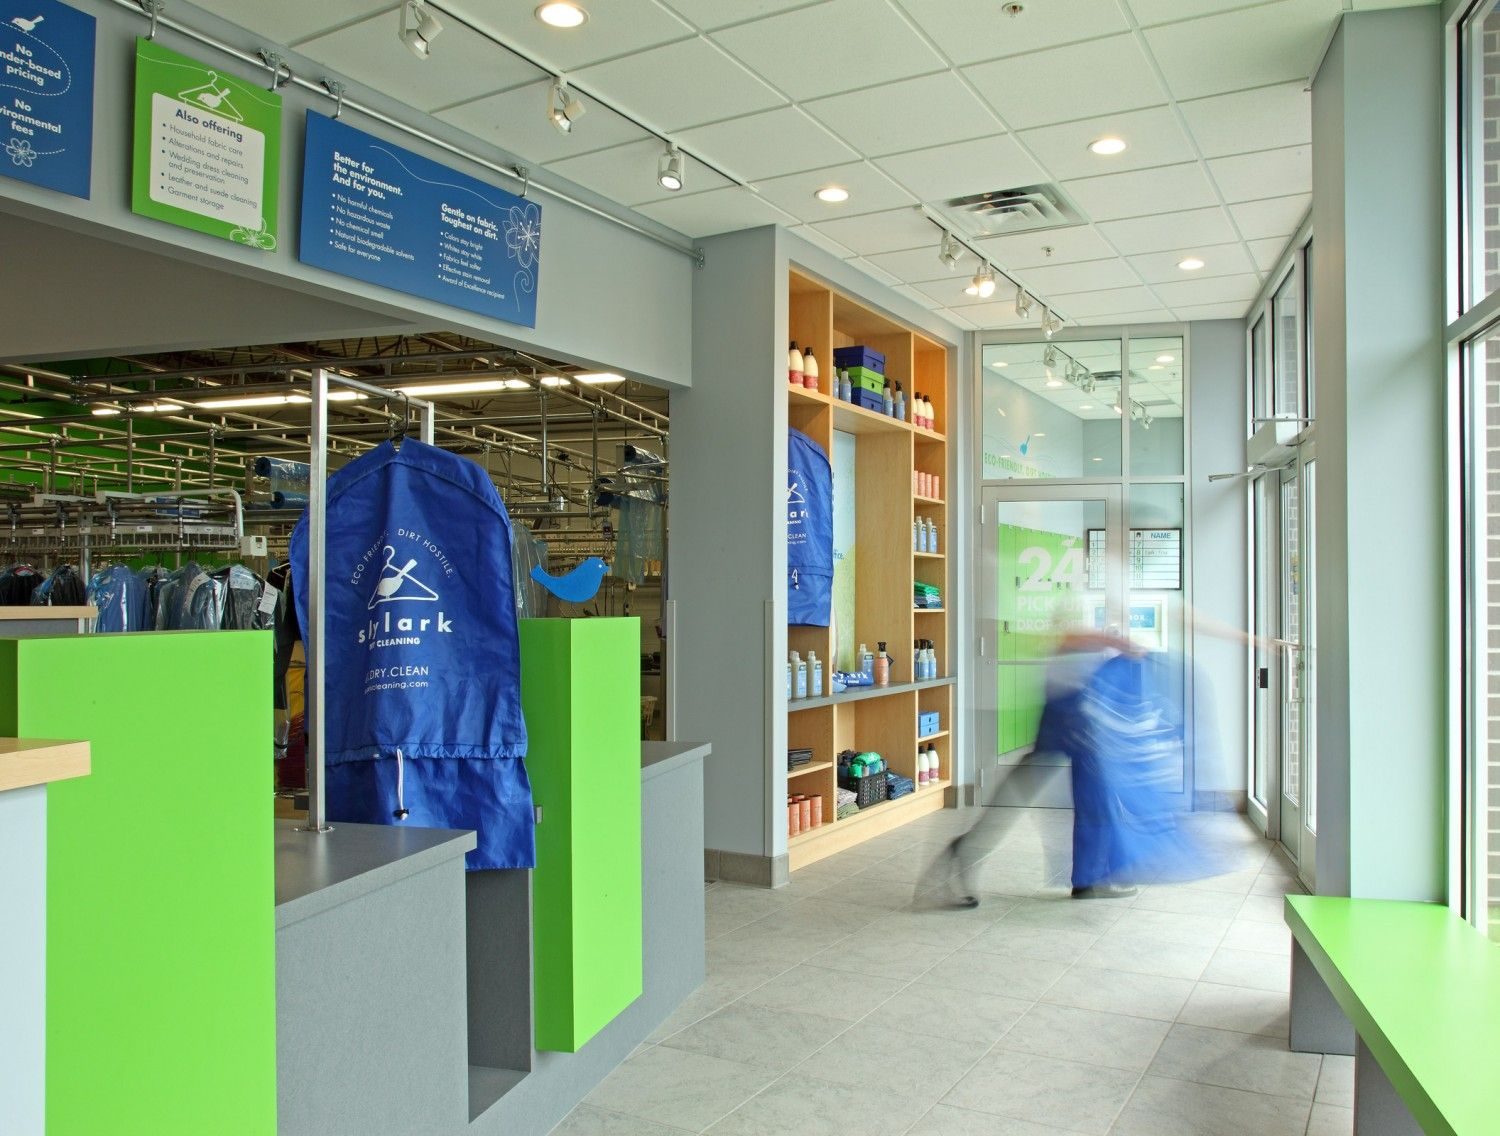 Mcmonigal Helped Skylark Dry Cleaning A Chemical Free Sustainable Cleaner Renovate An Existing Structure Rather Than Bu Laundry Shop Dry Cleaning Renovations